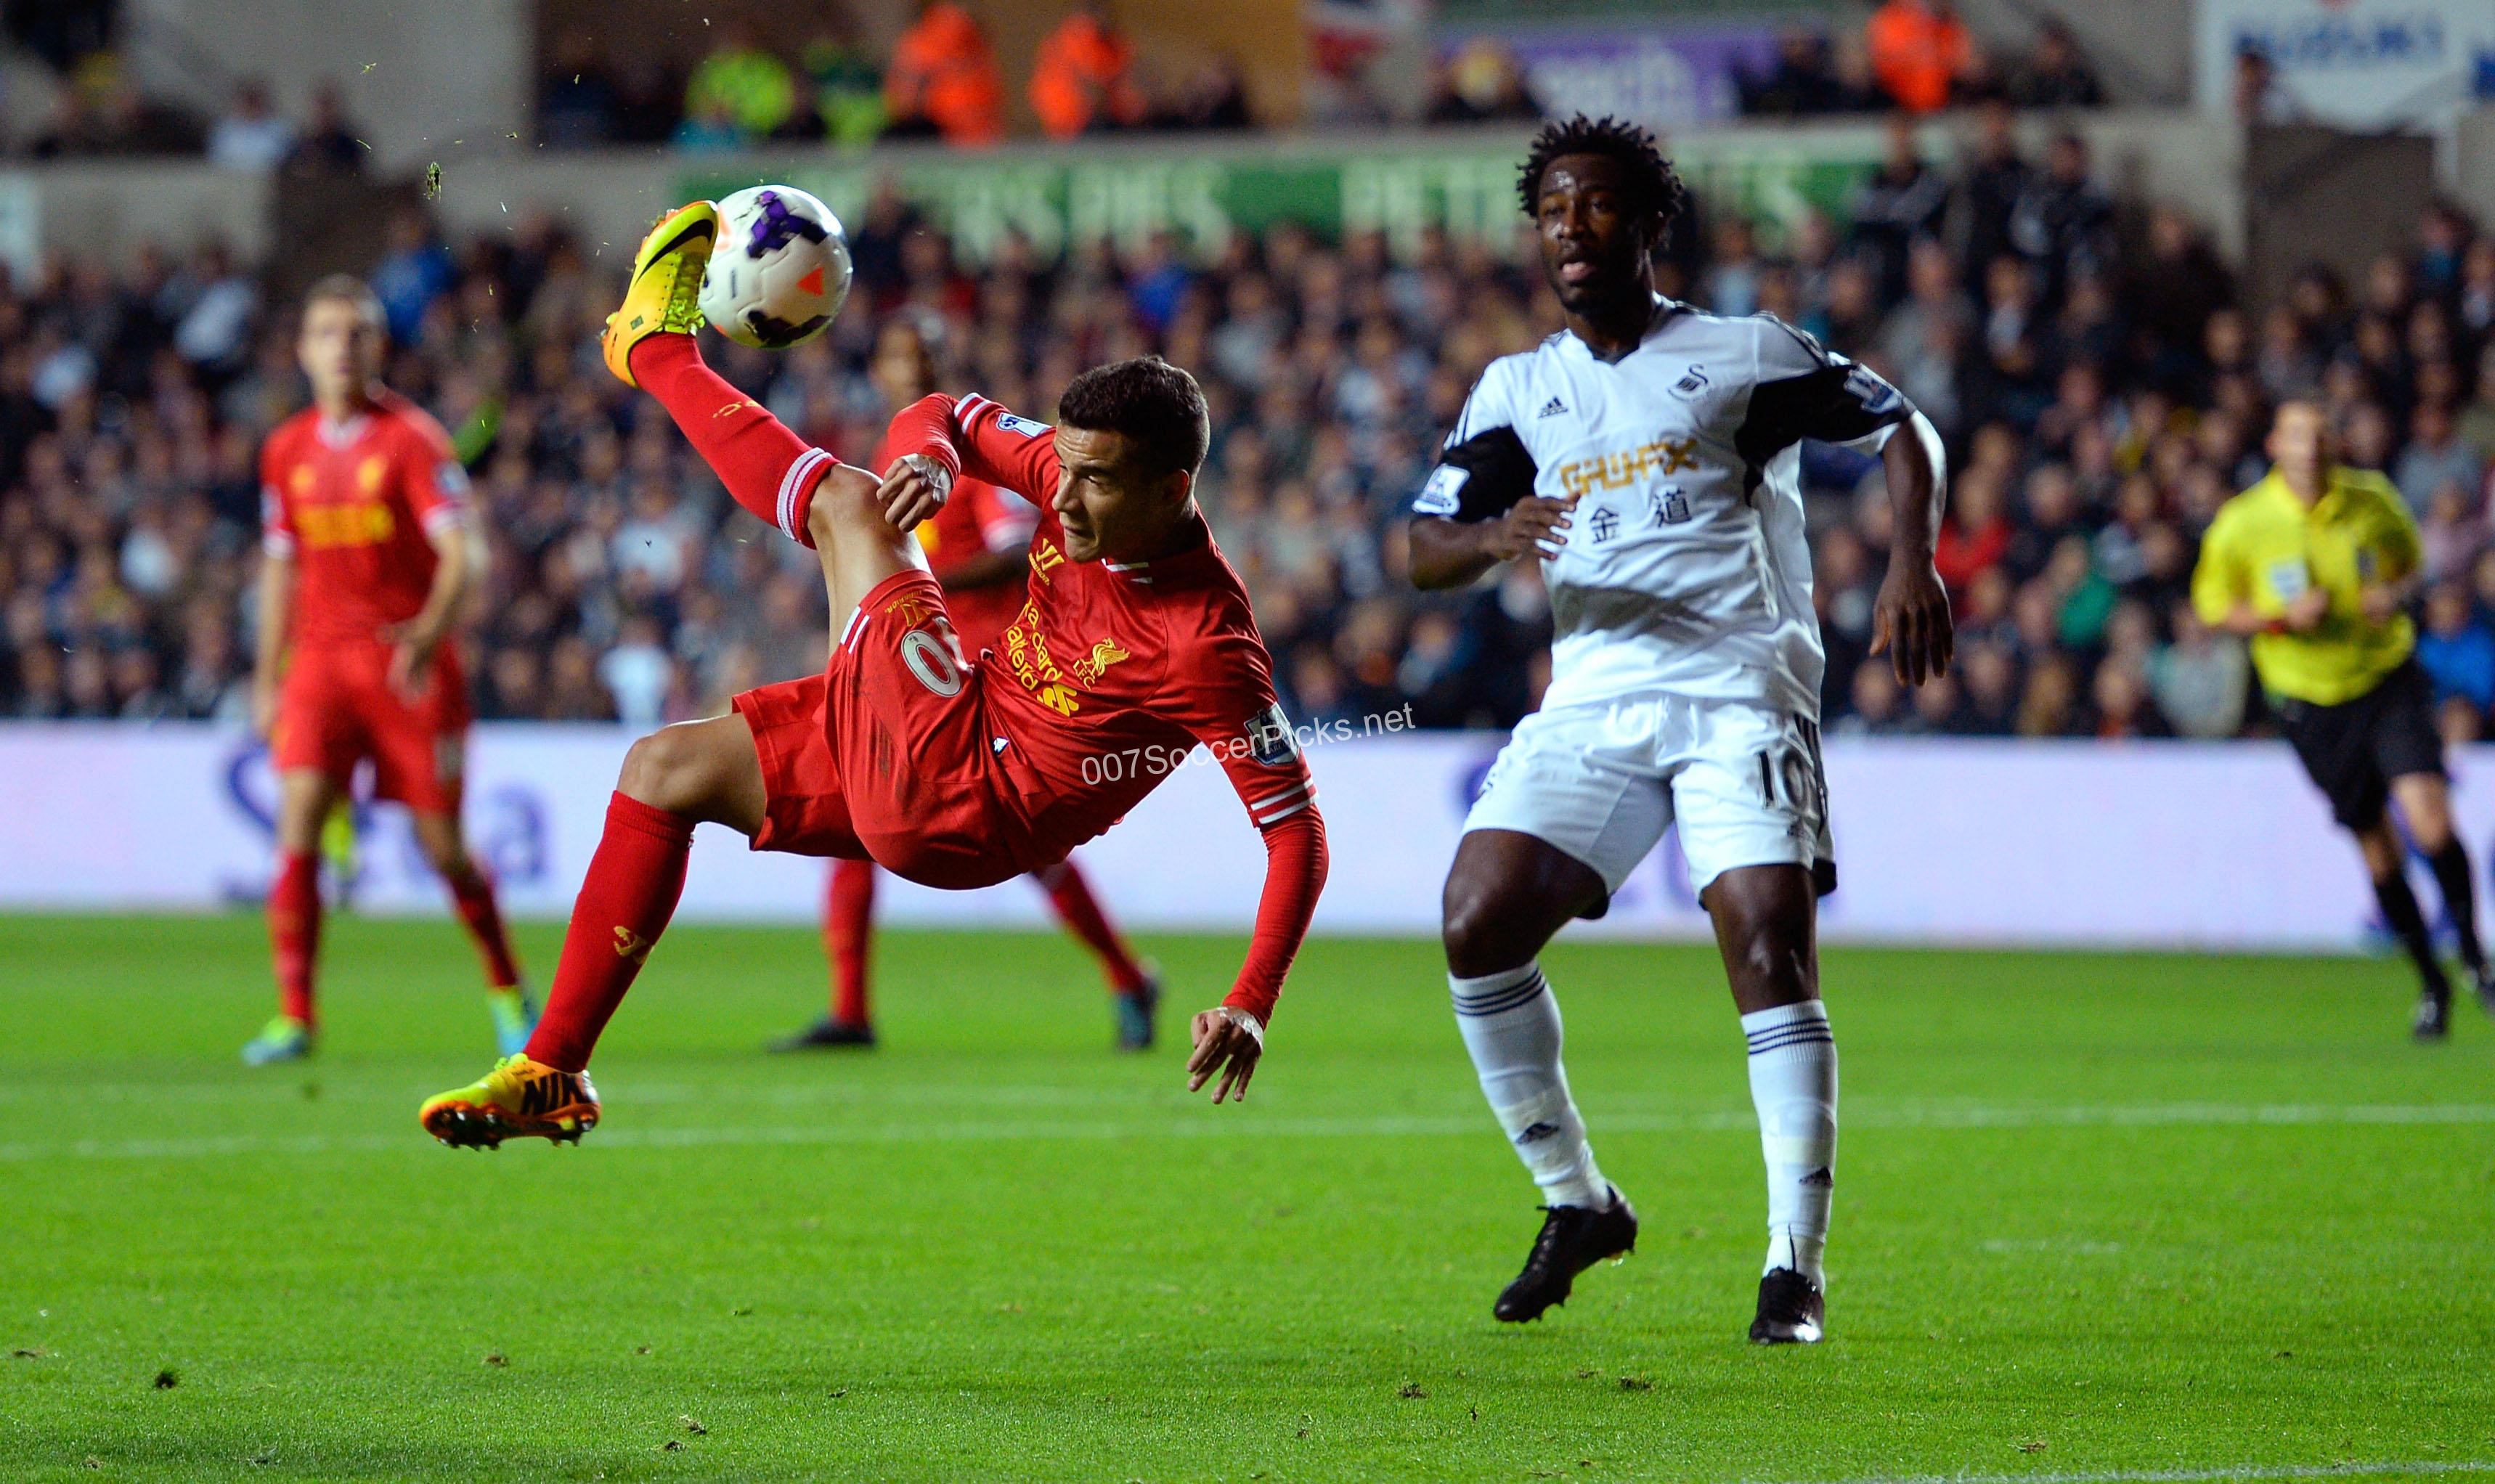 Liverpool vs Swansea prediction